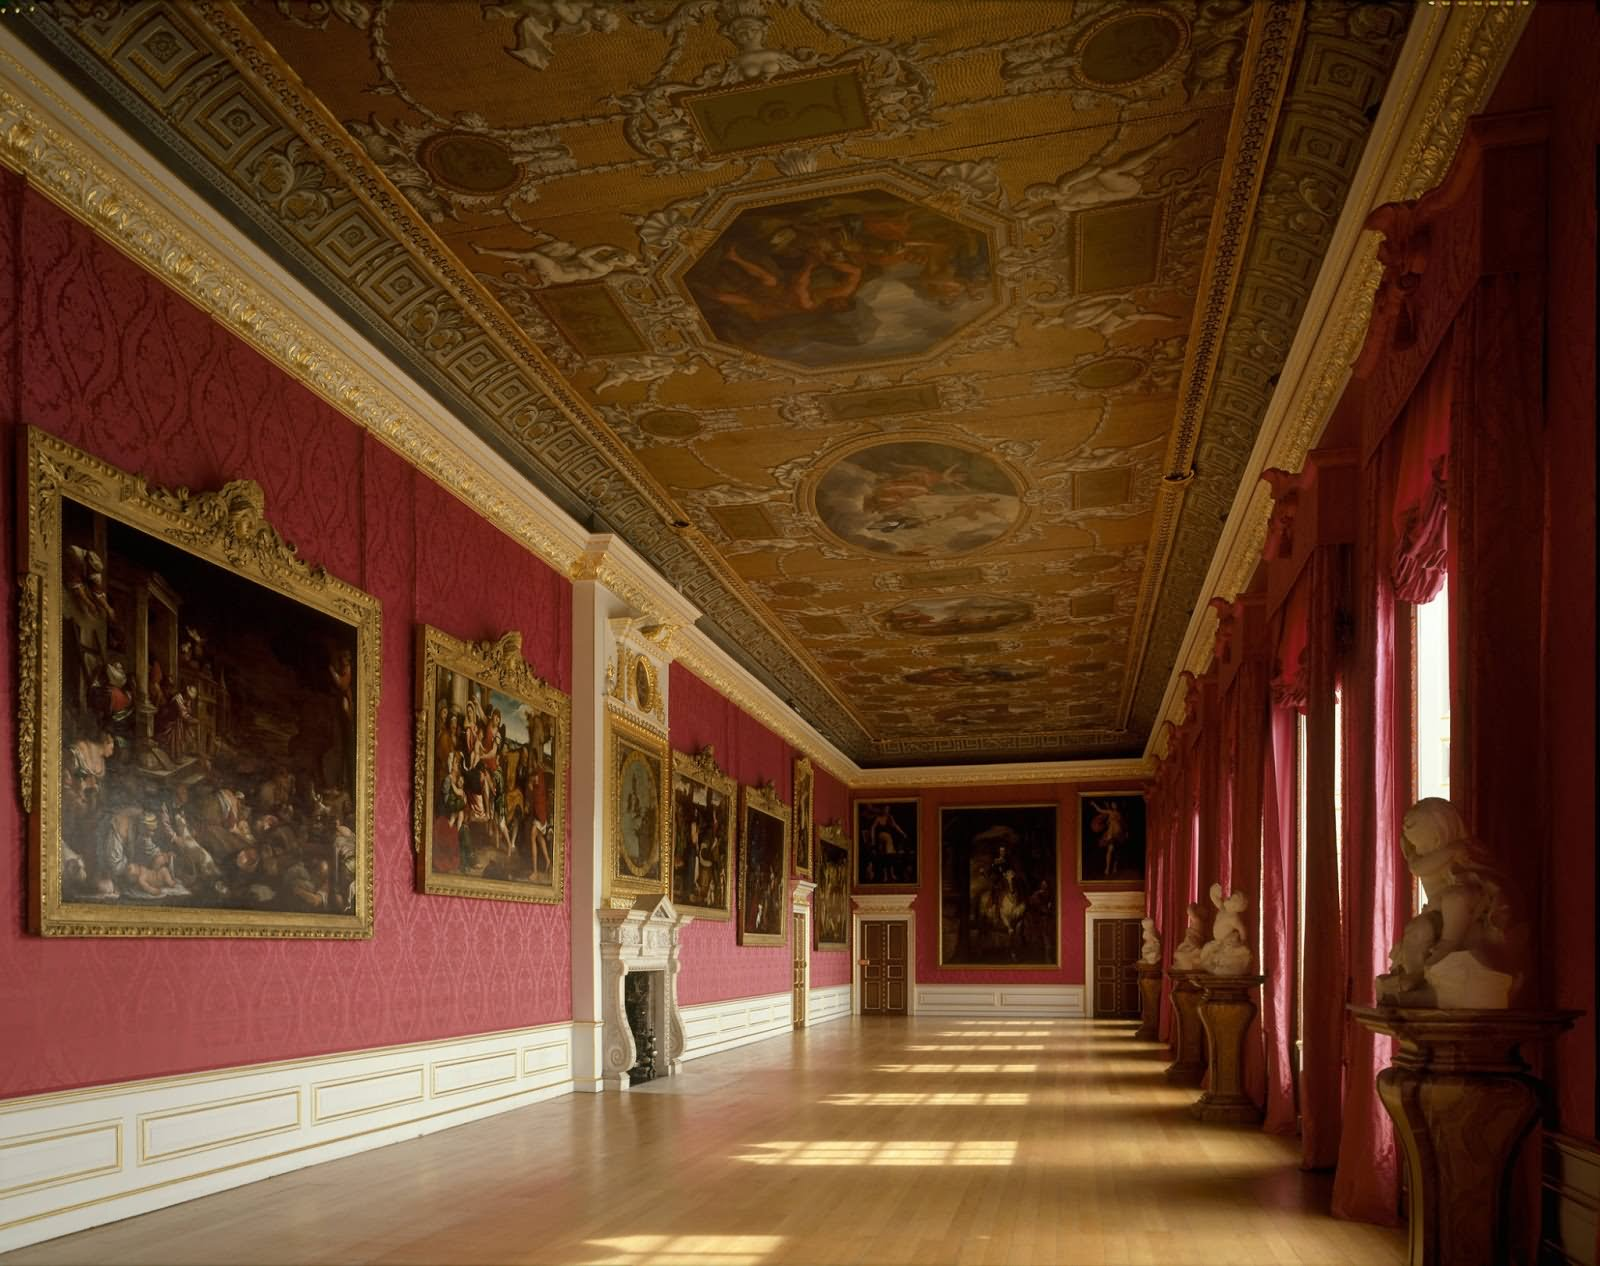 Beautiful Interior Design Of The Buckingham Palace - THE MOST BEAUTIFUL INTERIOR PICTURES OF BUCKINGHAM PALACE LONDON